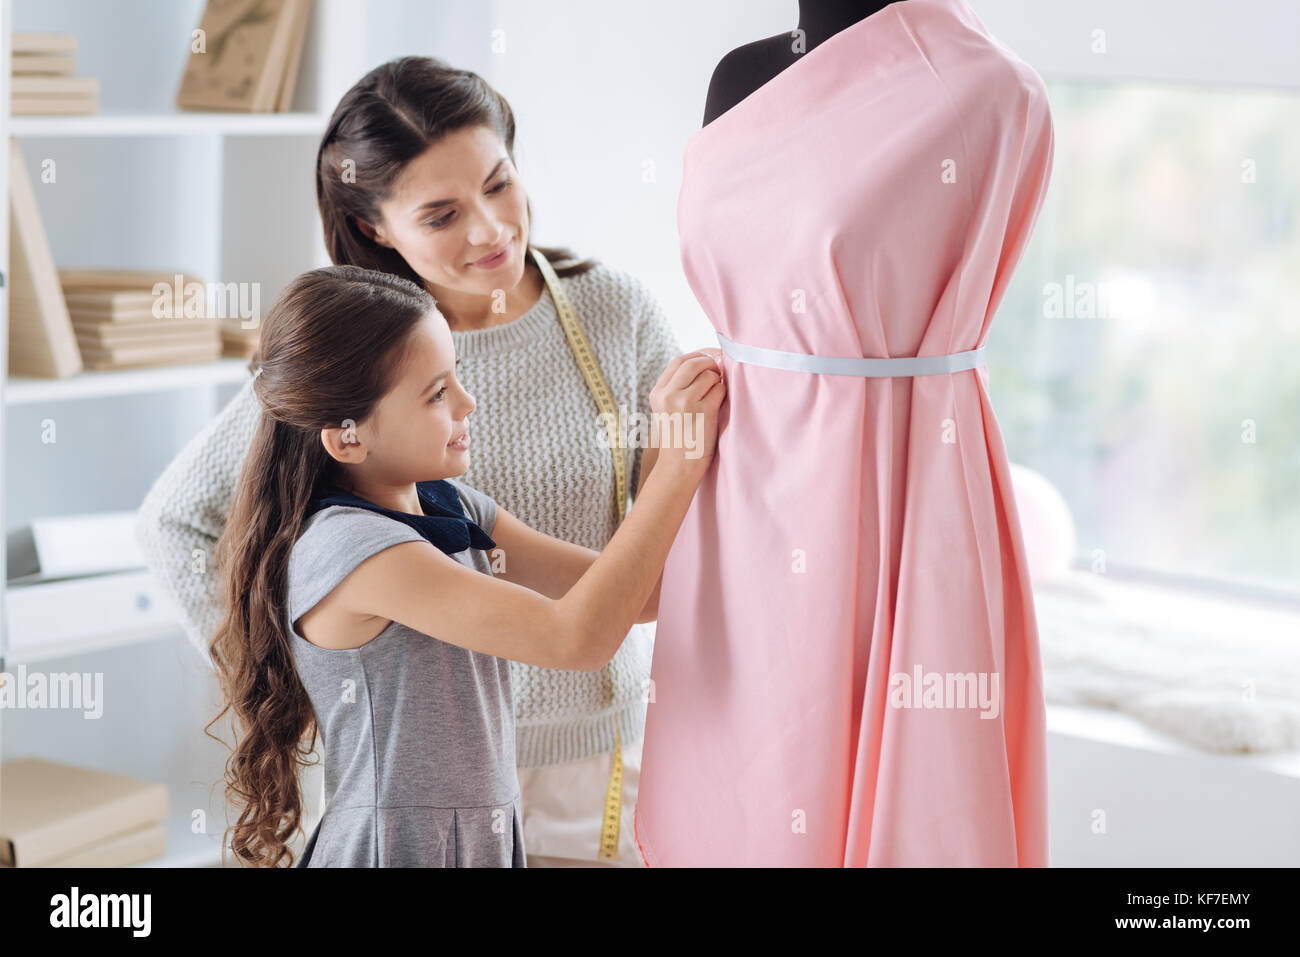 Positive cute girl learning clothes design - Stock Image